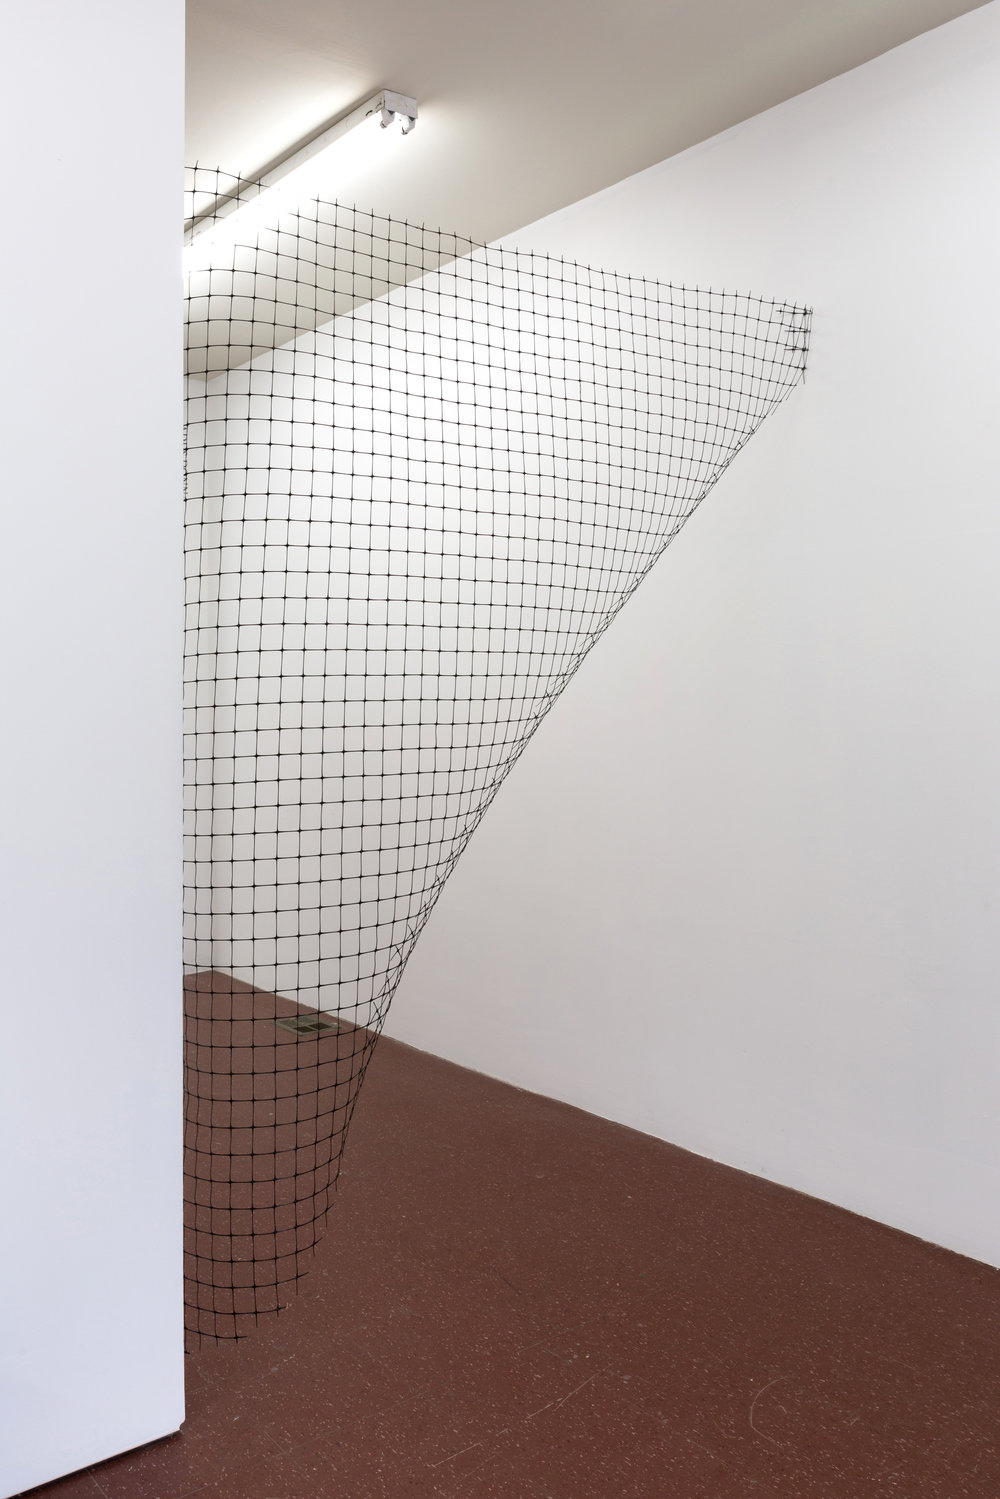 Enclosure , 2017 deer fencing dimensions variable